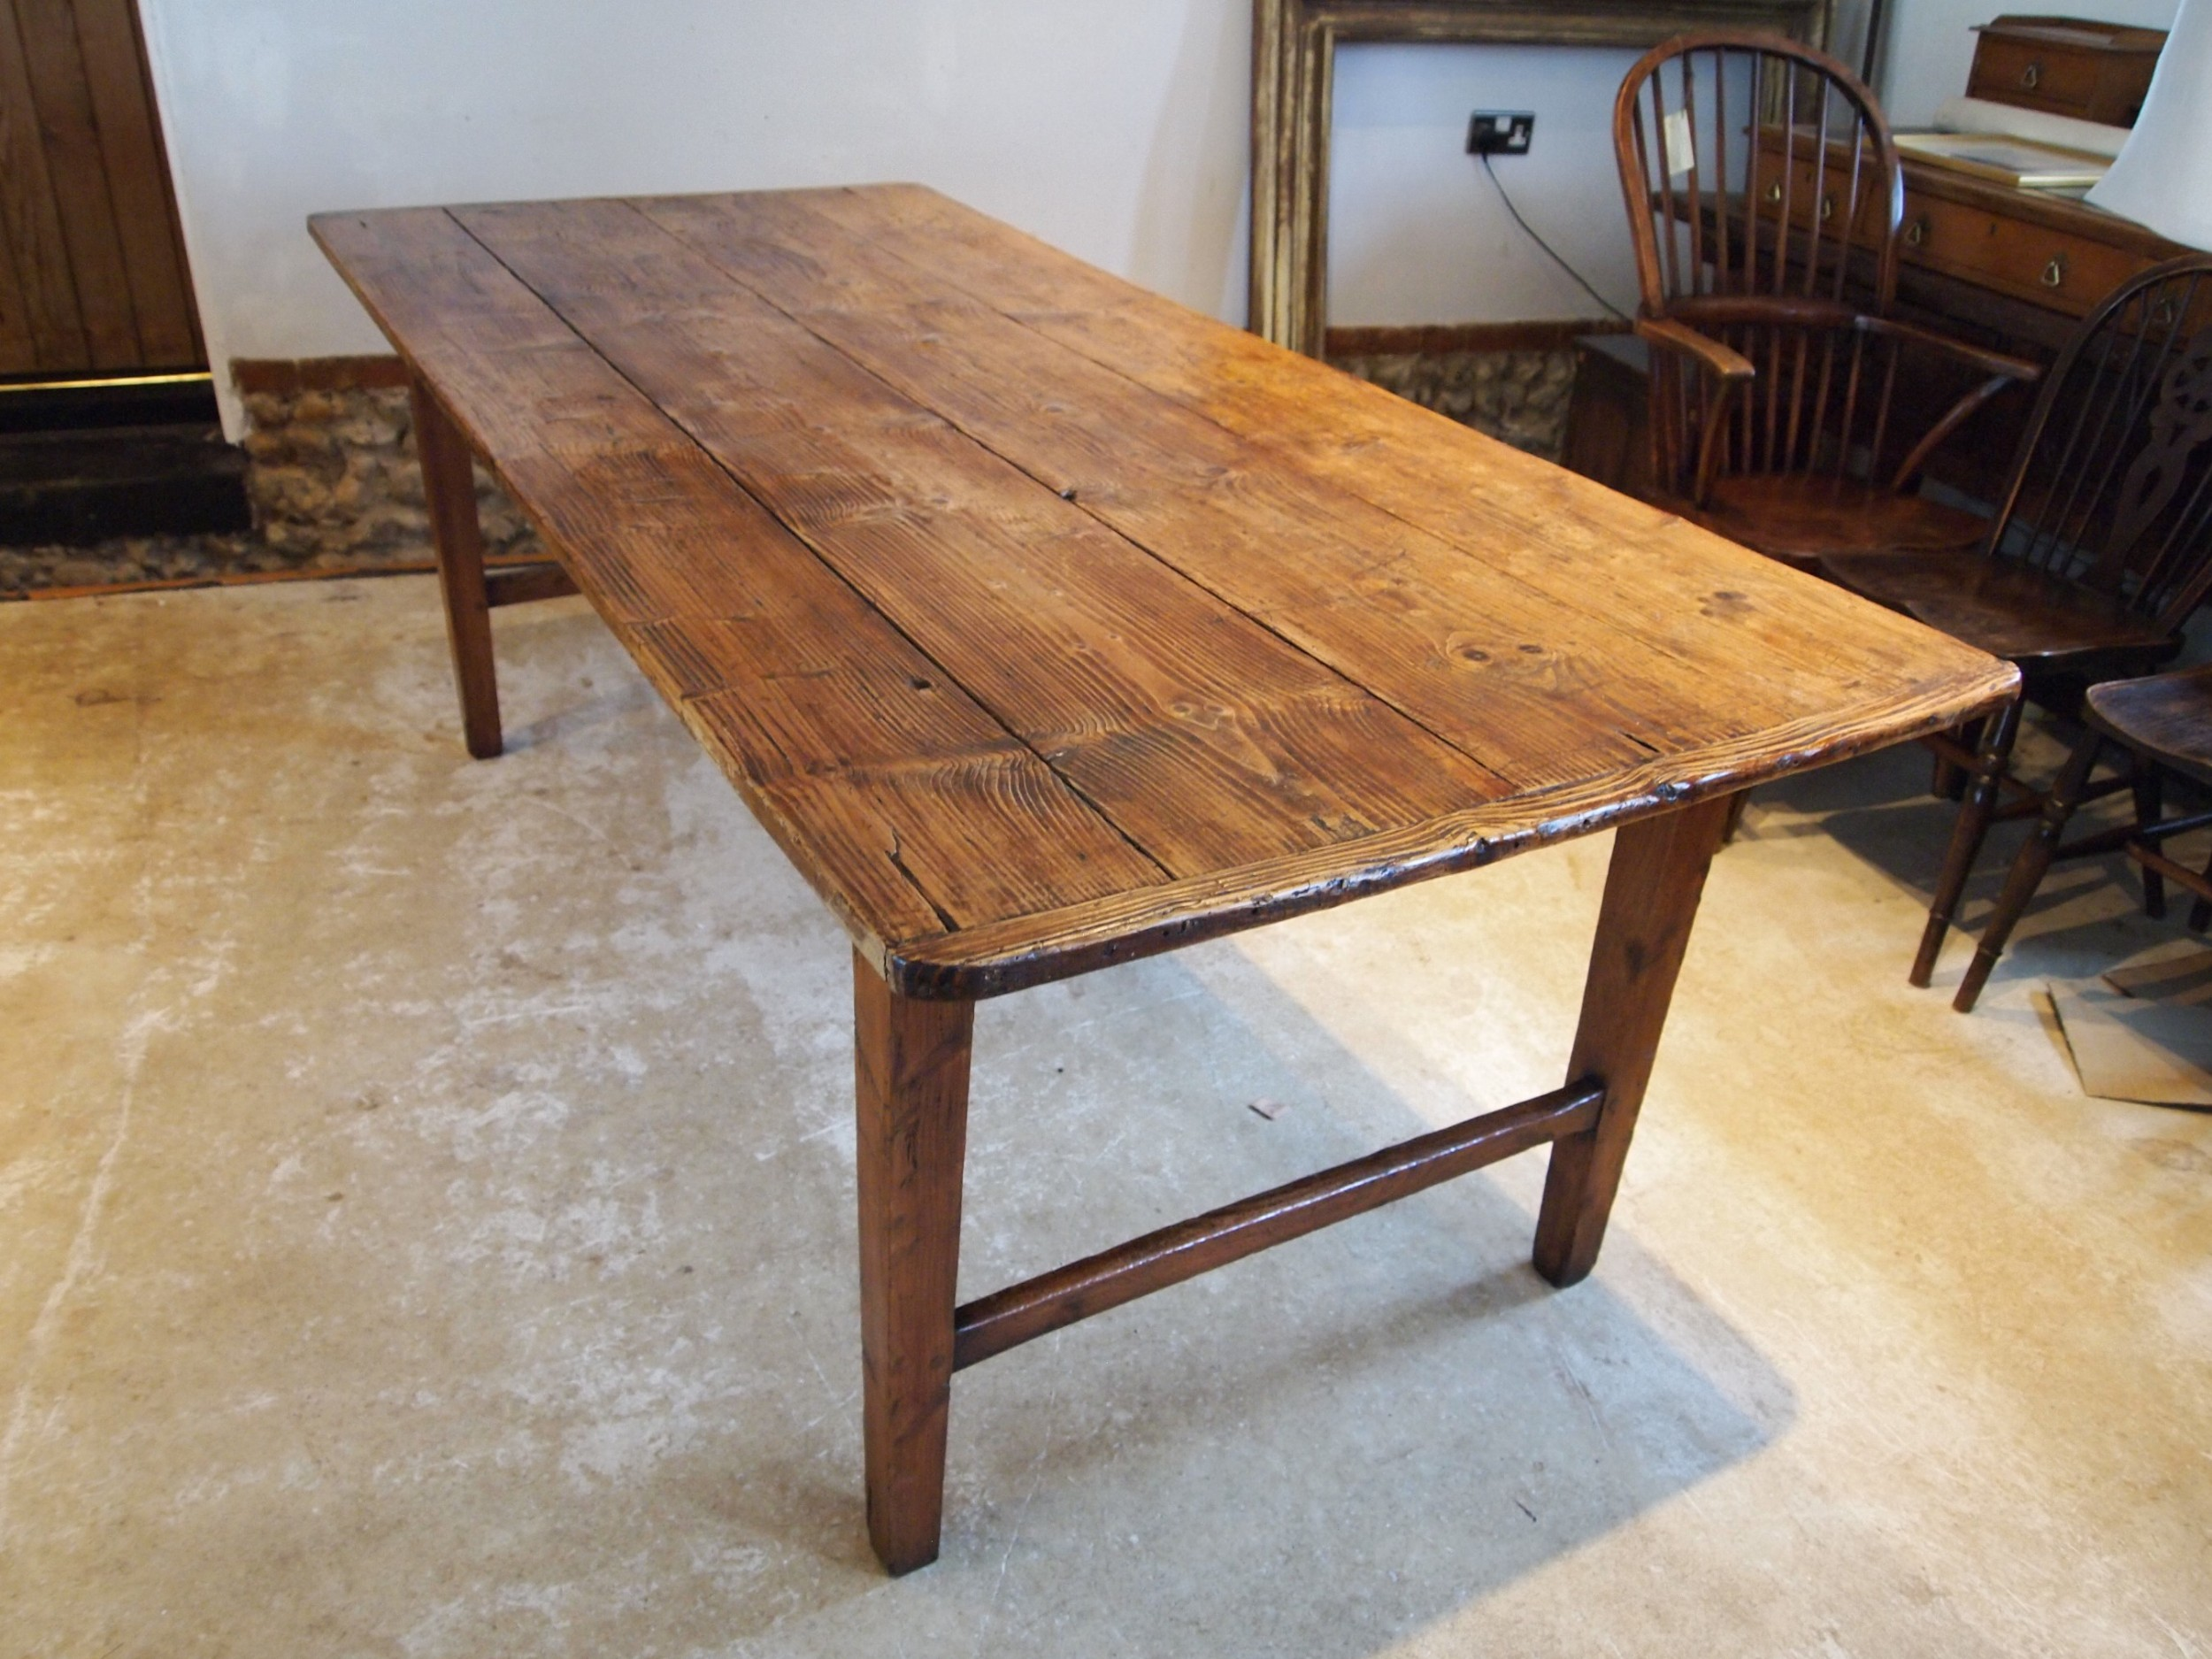 table refectory dining rare english george iii pine farmhouse c1780